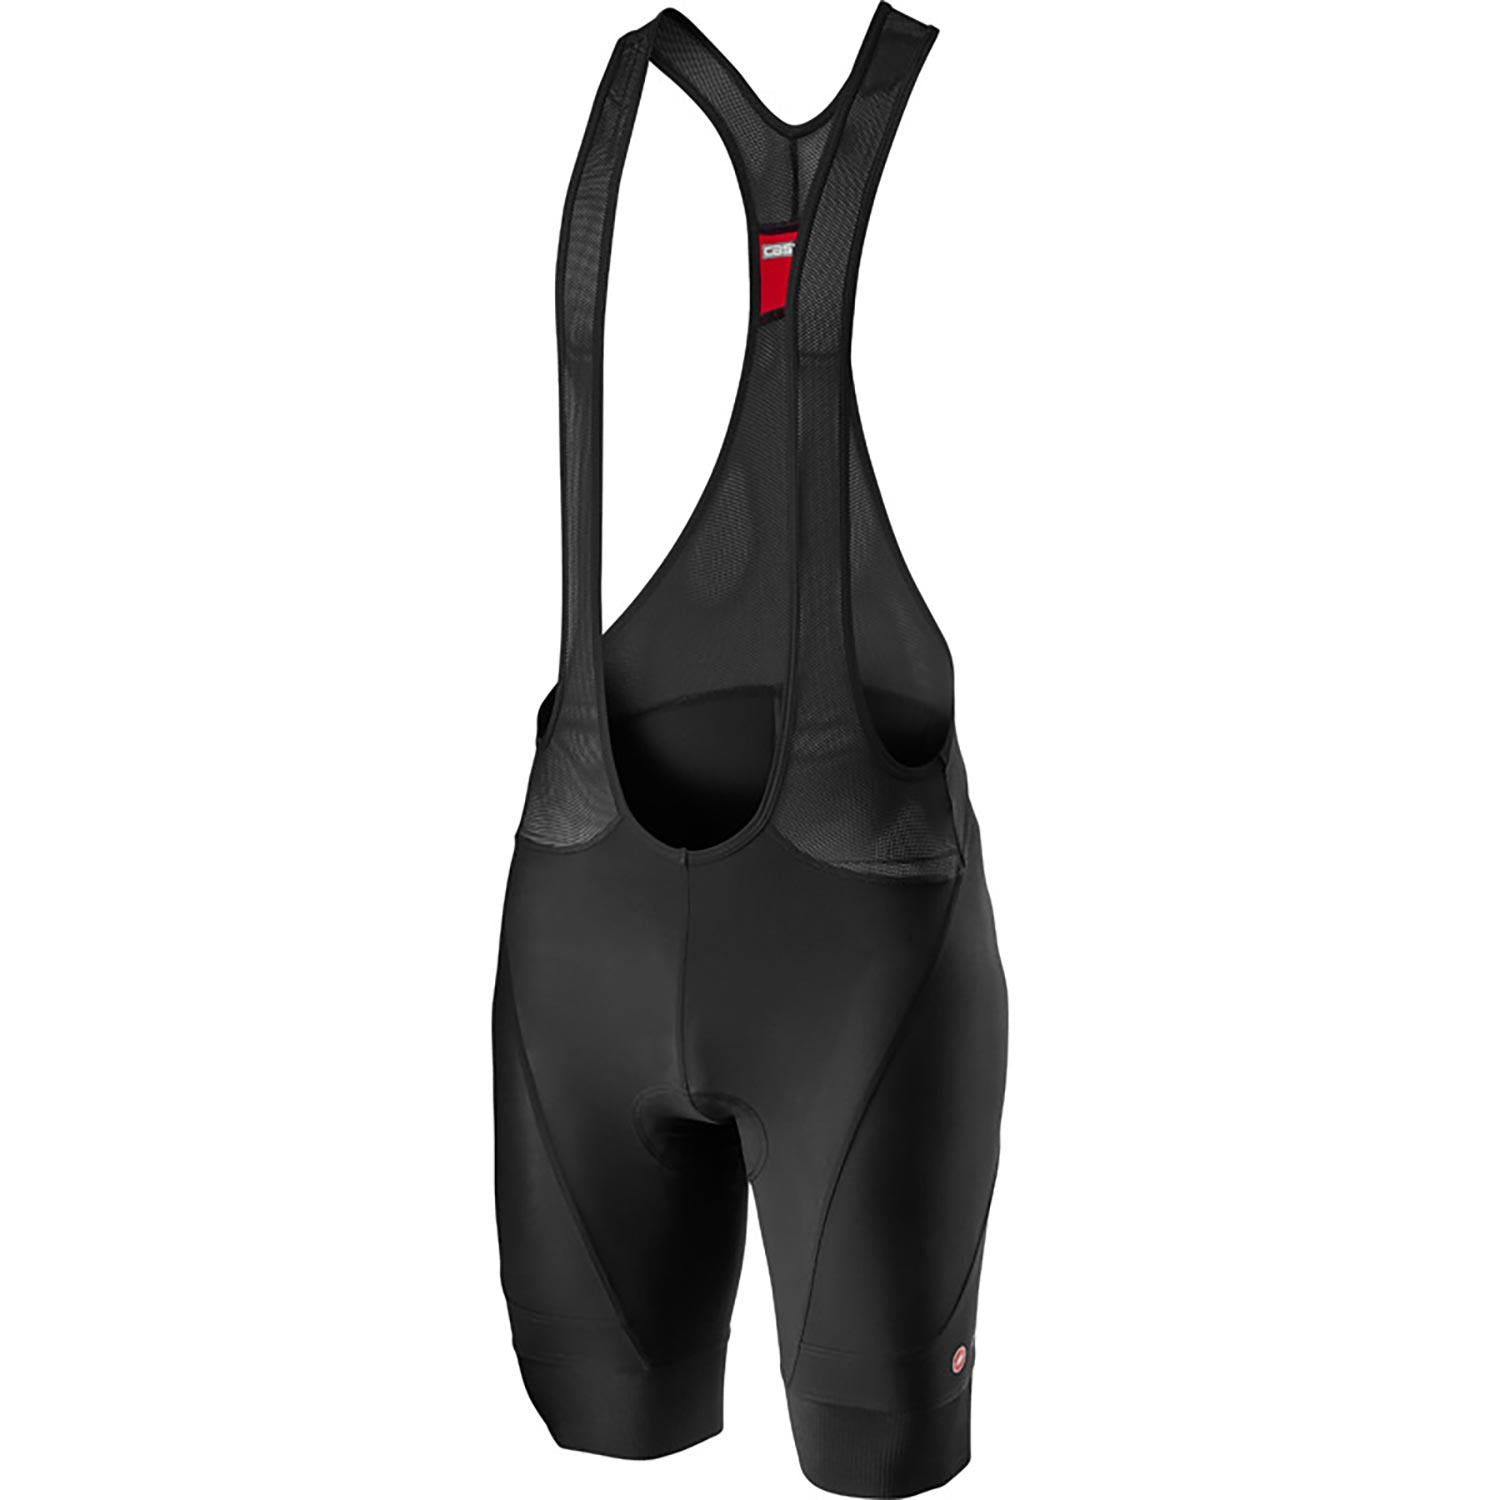 Castelli-Castelli Endurance 3 Bib Shorts-Black-S-CS210050102-saddleback-elite-performance-cycling